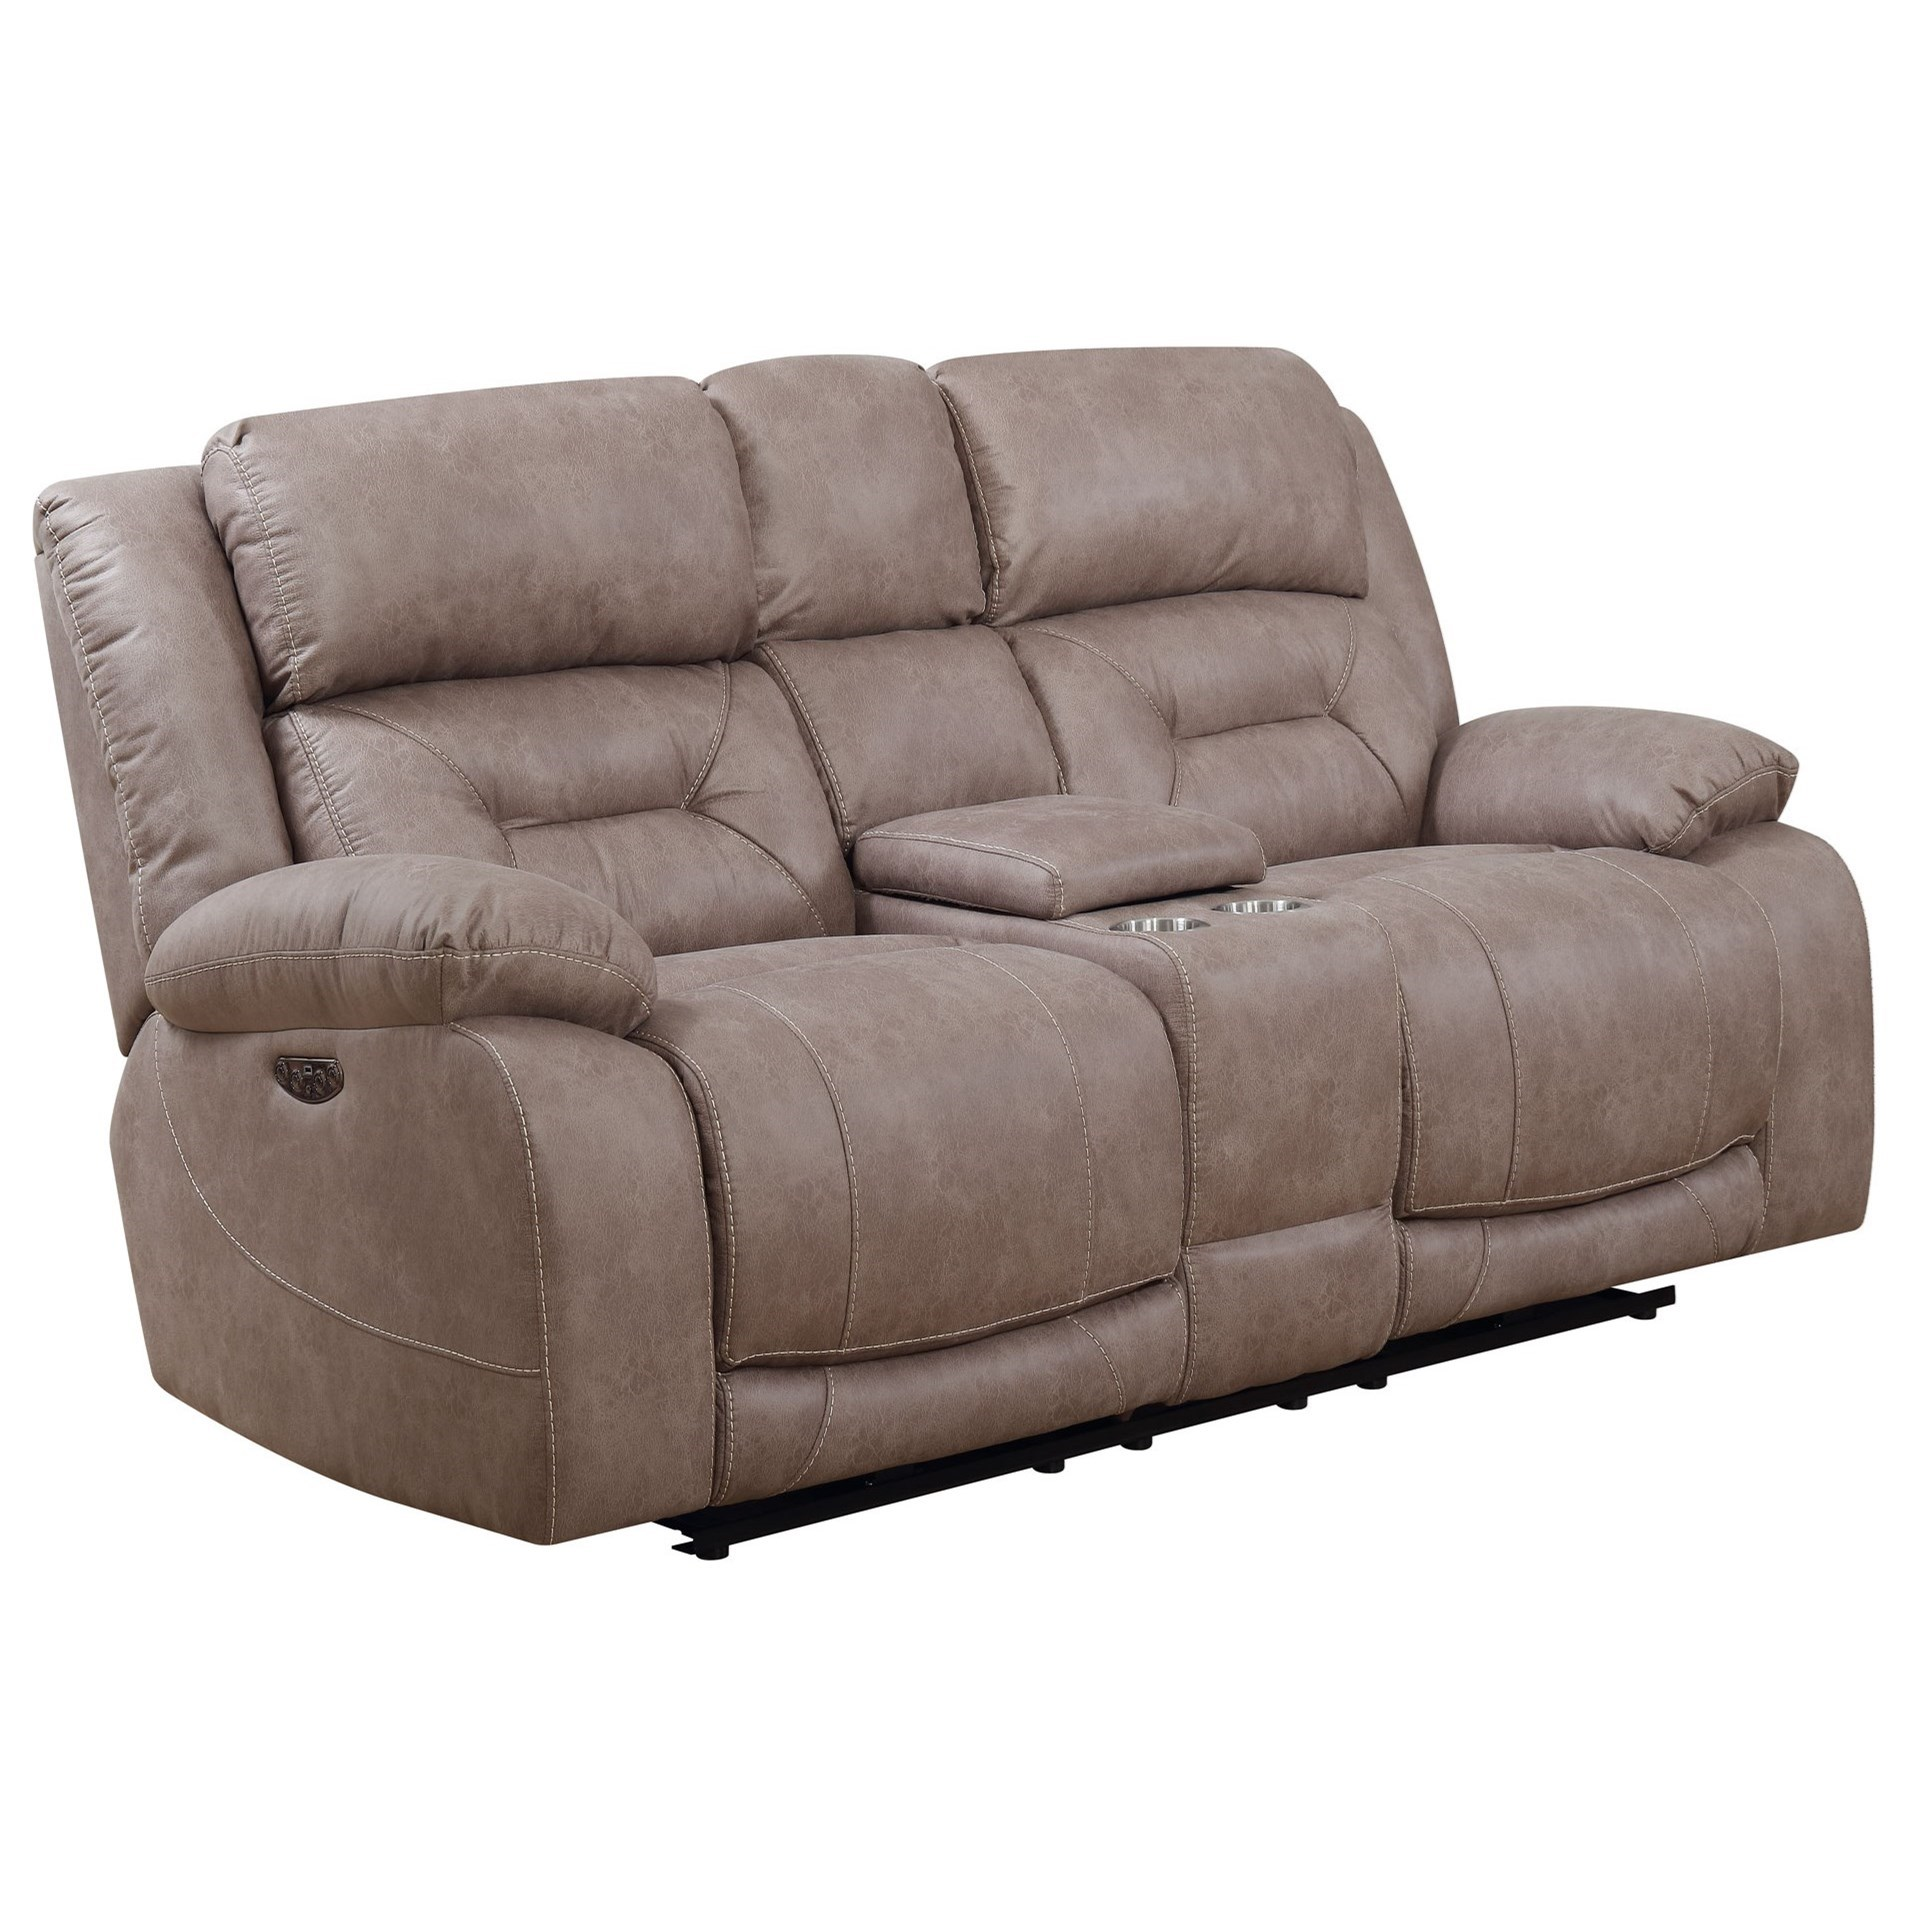 Aria Power Reclining Loveseat by Steve Silver at Standard Furniture